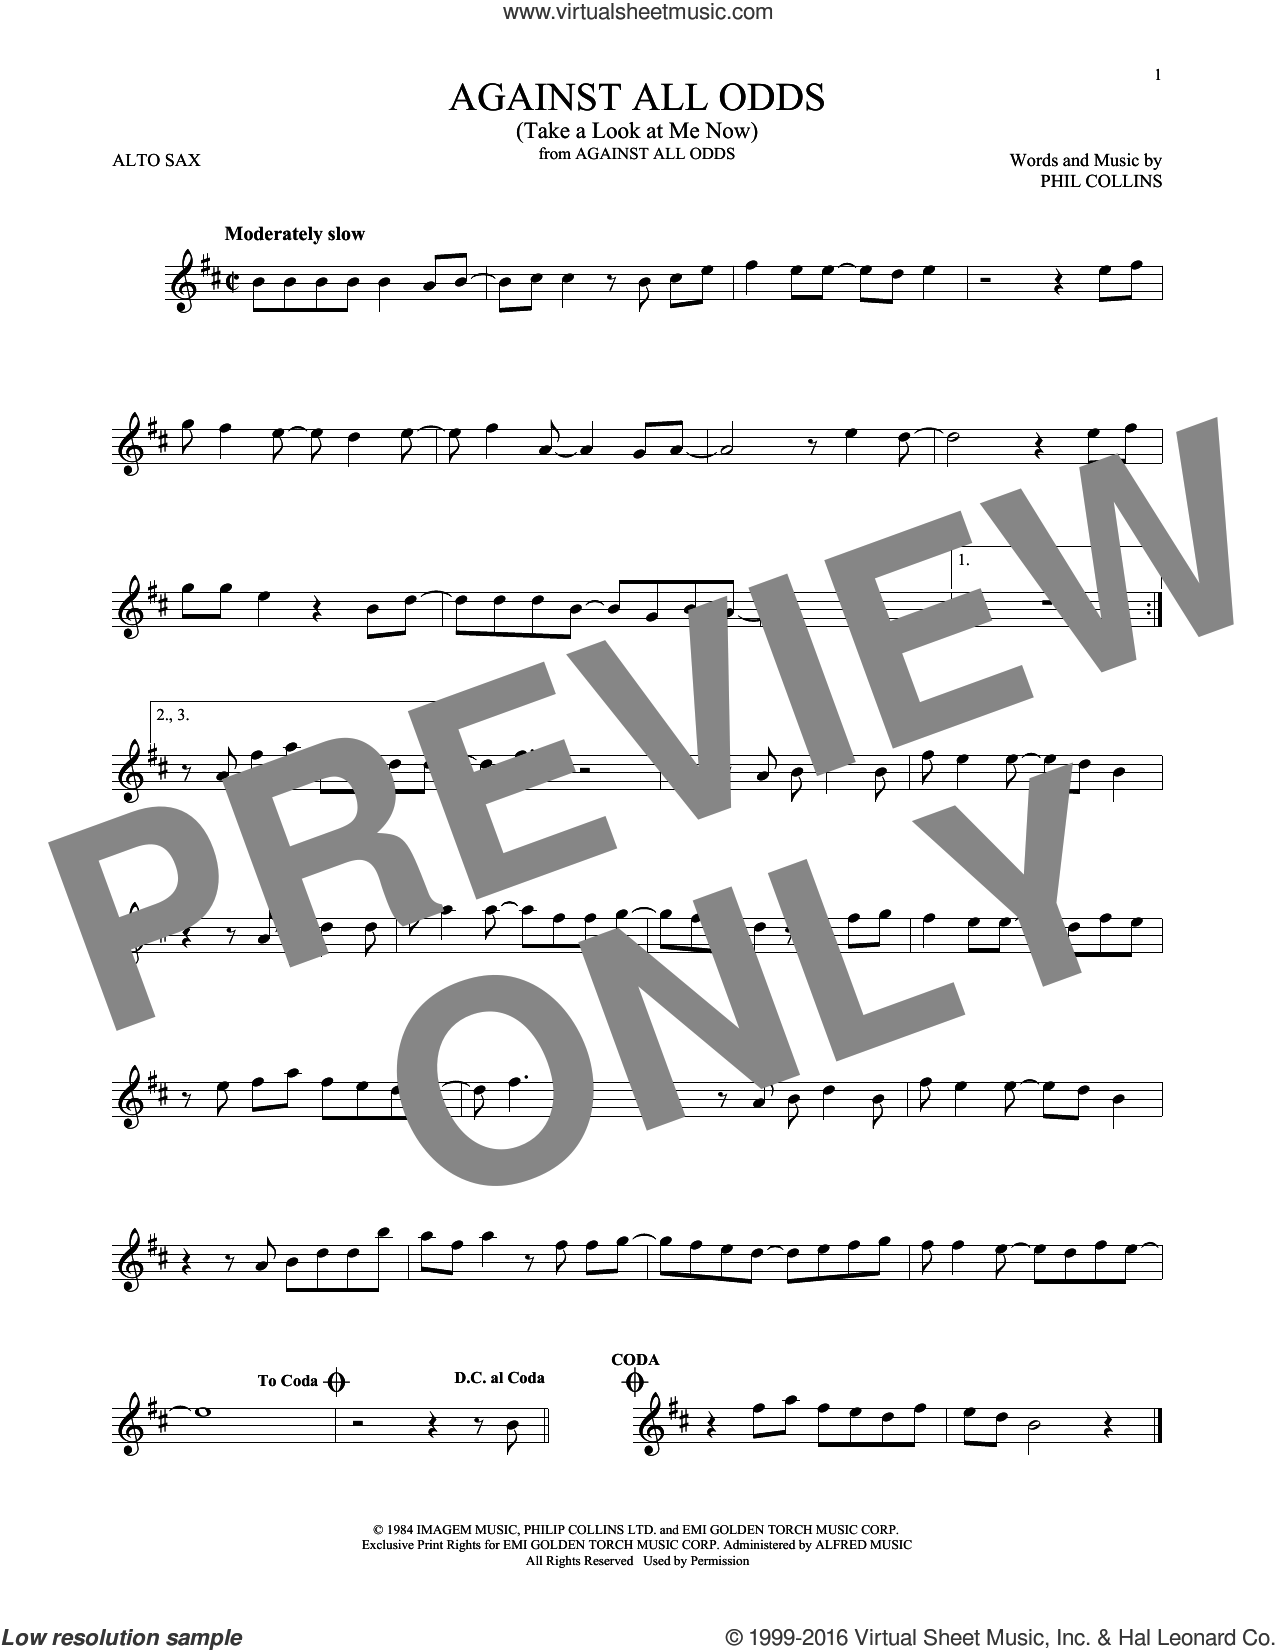 Against All Odds (Take A Look At Me Now) sheet music for alto saxophone solo ( Sax) by Phil Collins, intermediate alto saxophone ( Sax). Score Image Preview.